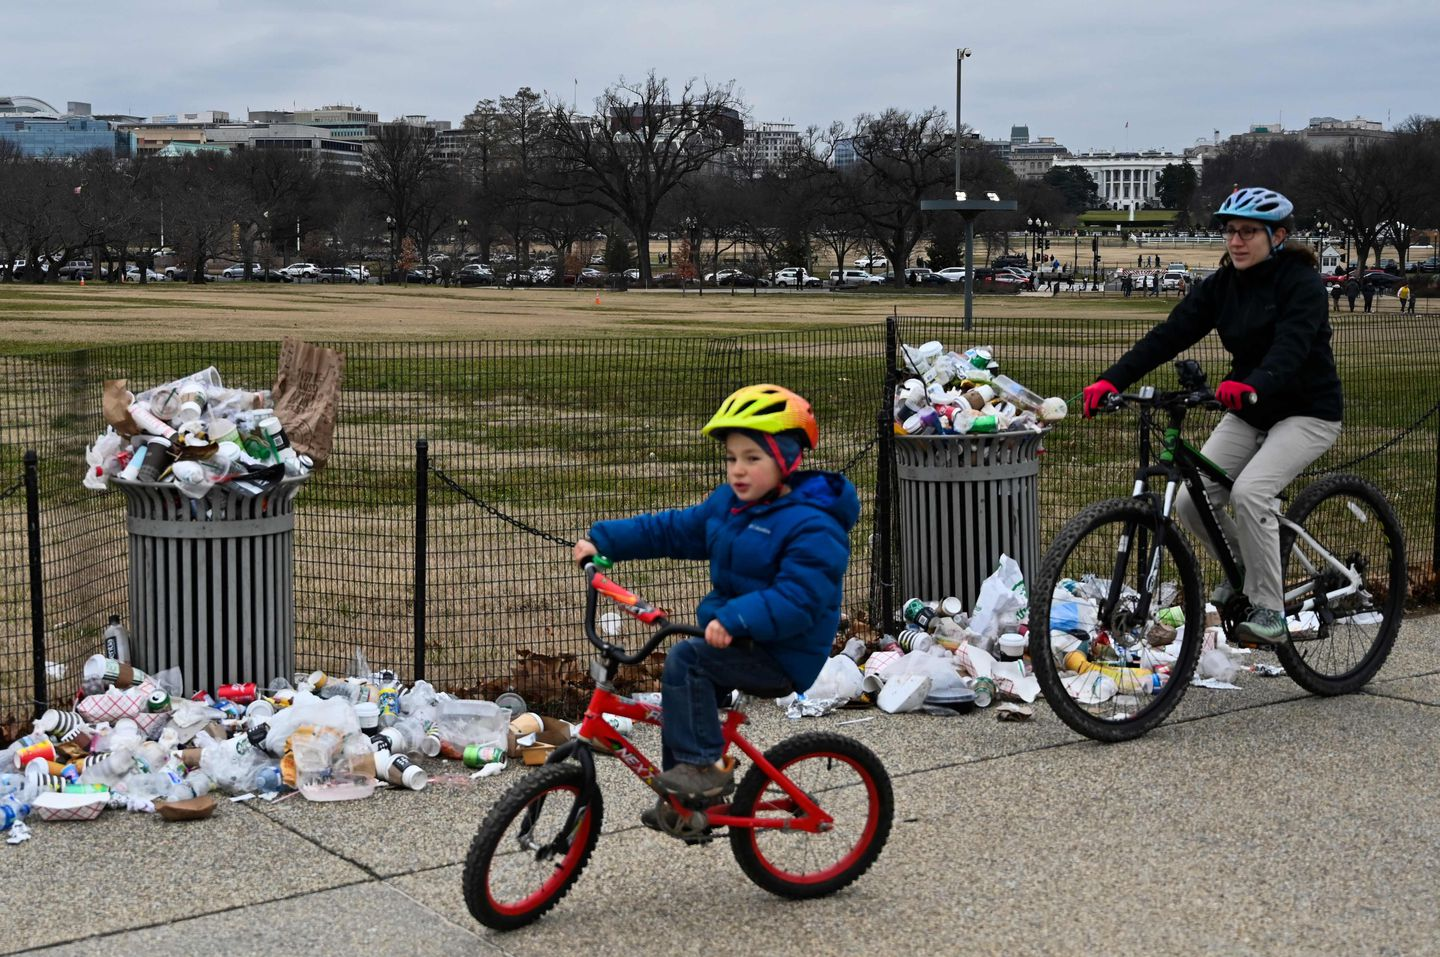 The White House was seen in the background as people biked past trash uncollected on the National Mall.